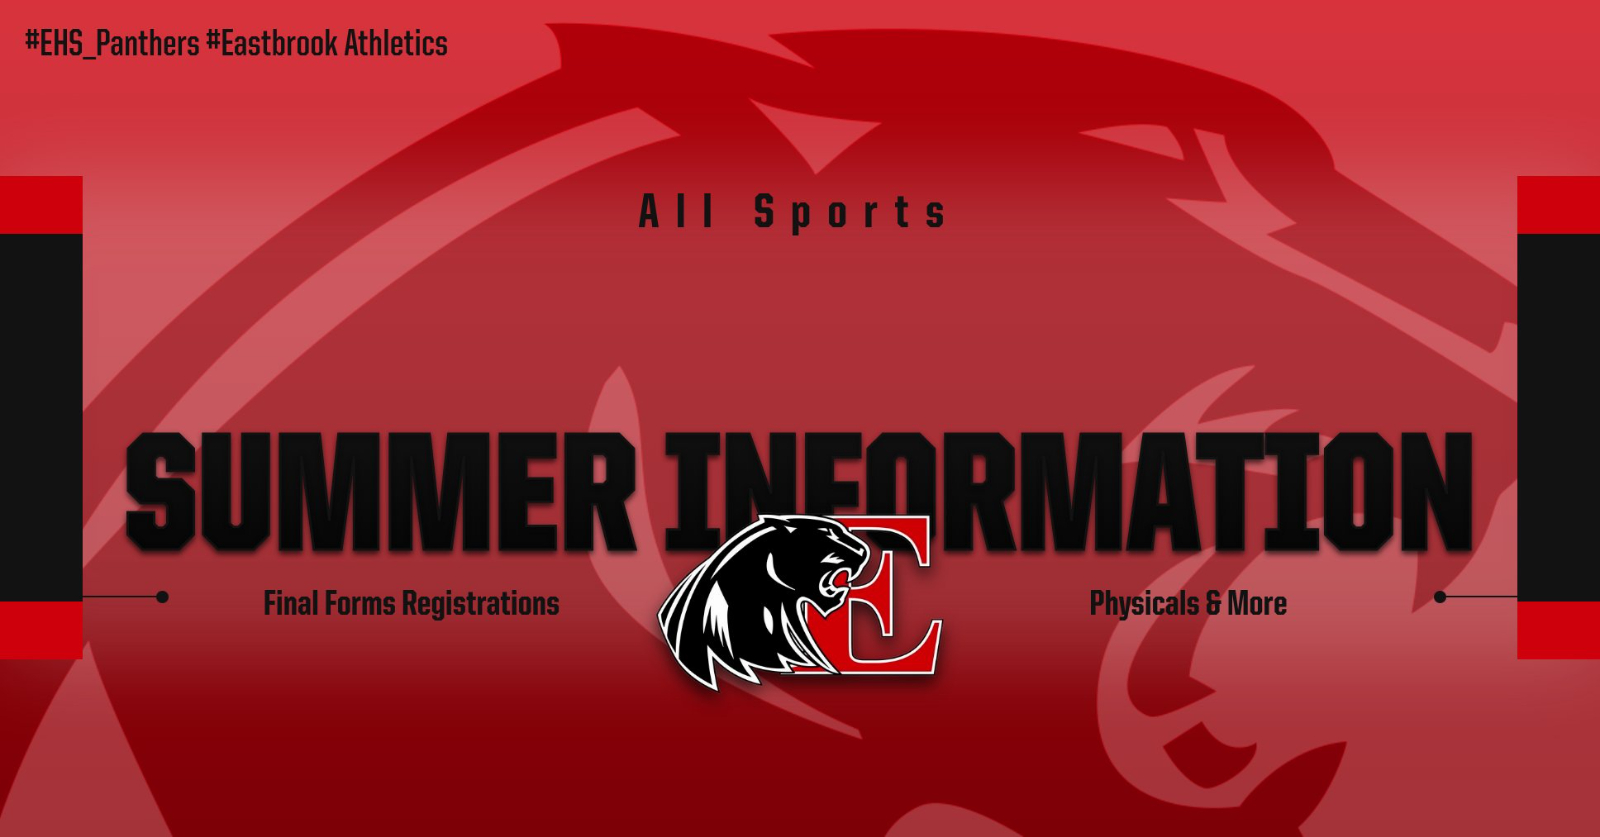 Athletic Registrations and Physicals Due by July 6th for Summer Conditioning